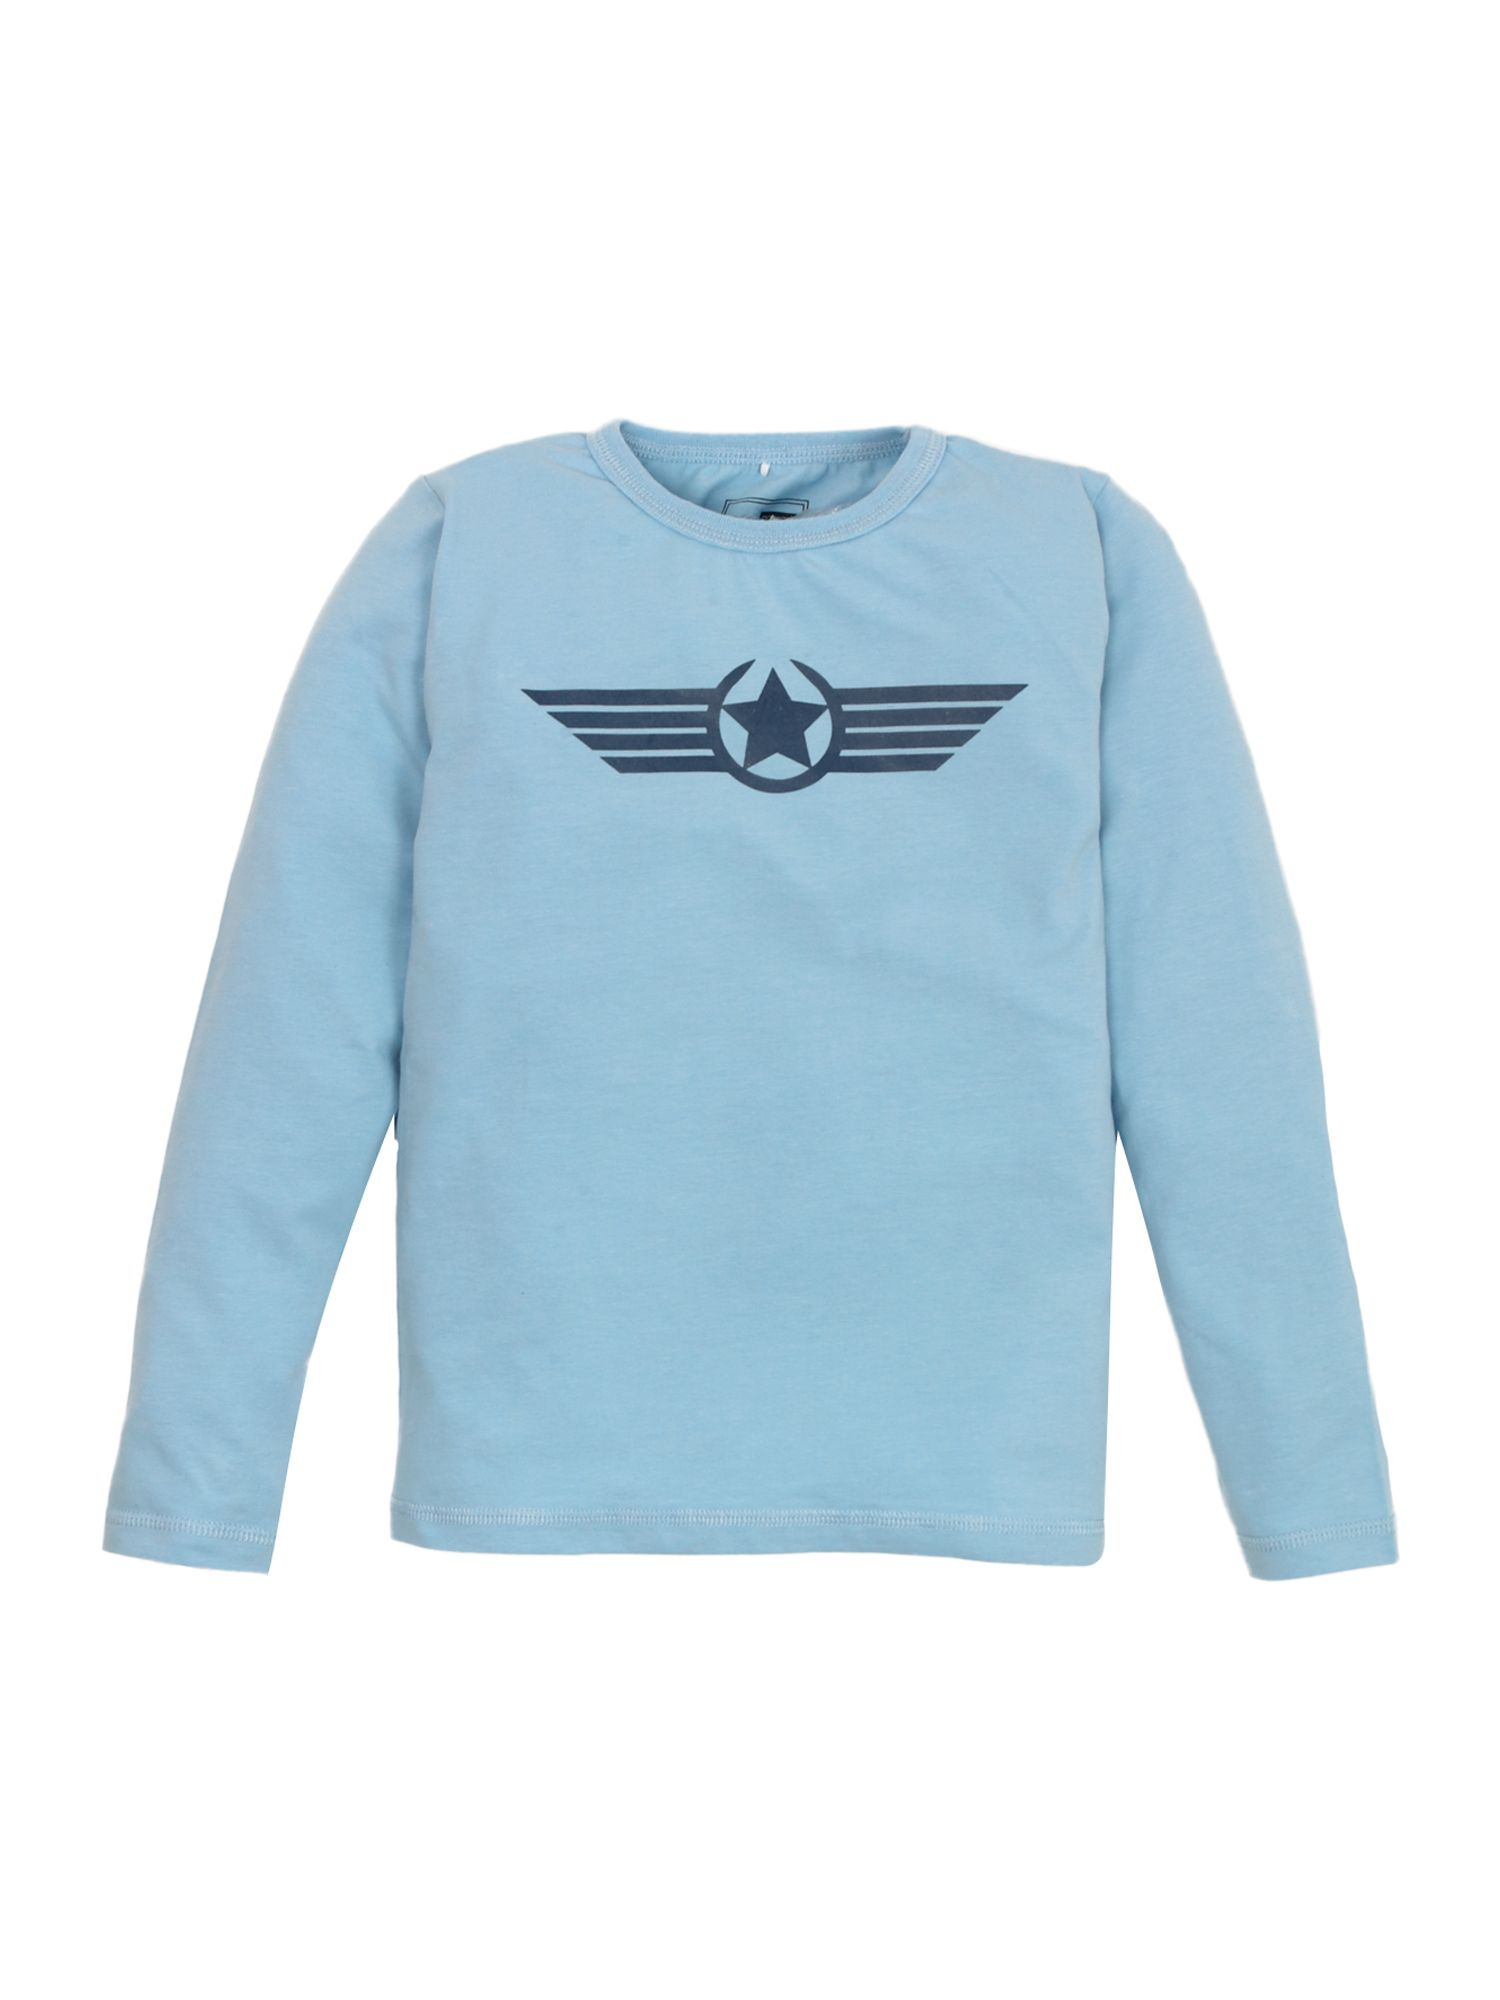 name it Long-sleeved star printed T-shirt - Light Blue product image